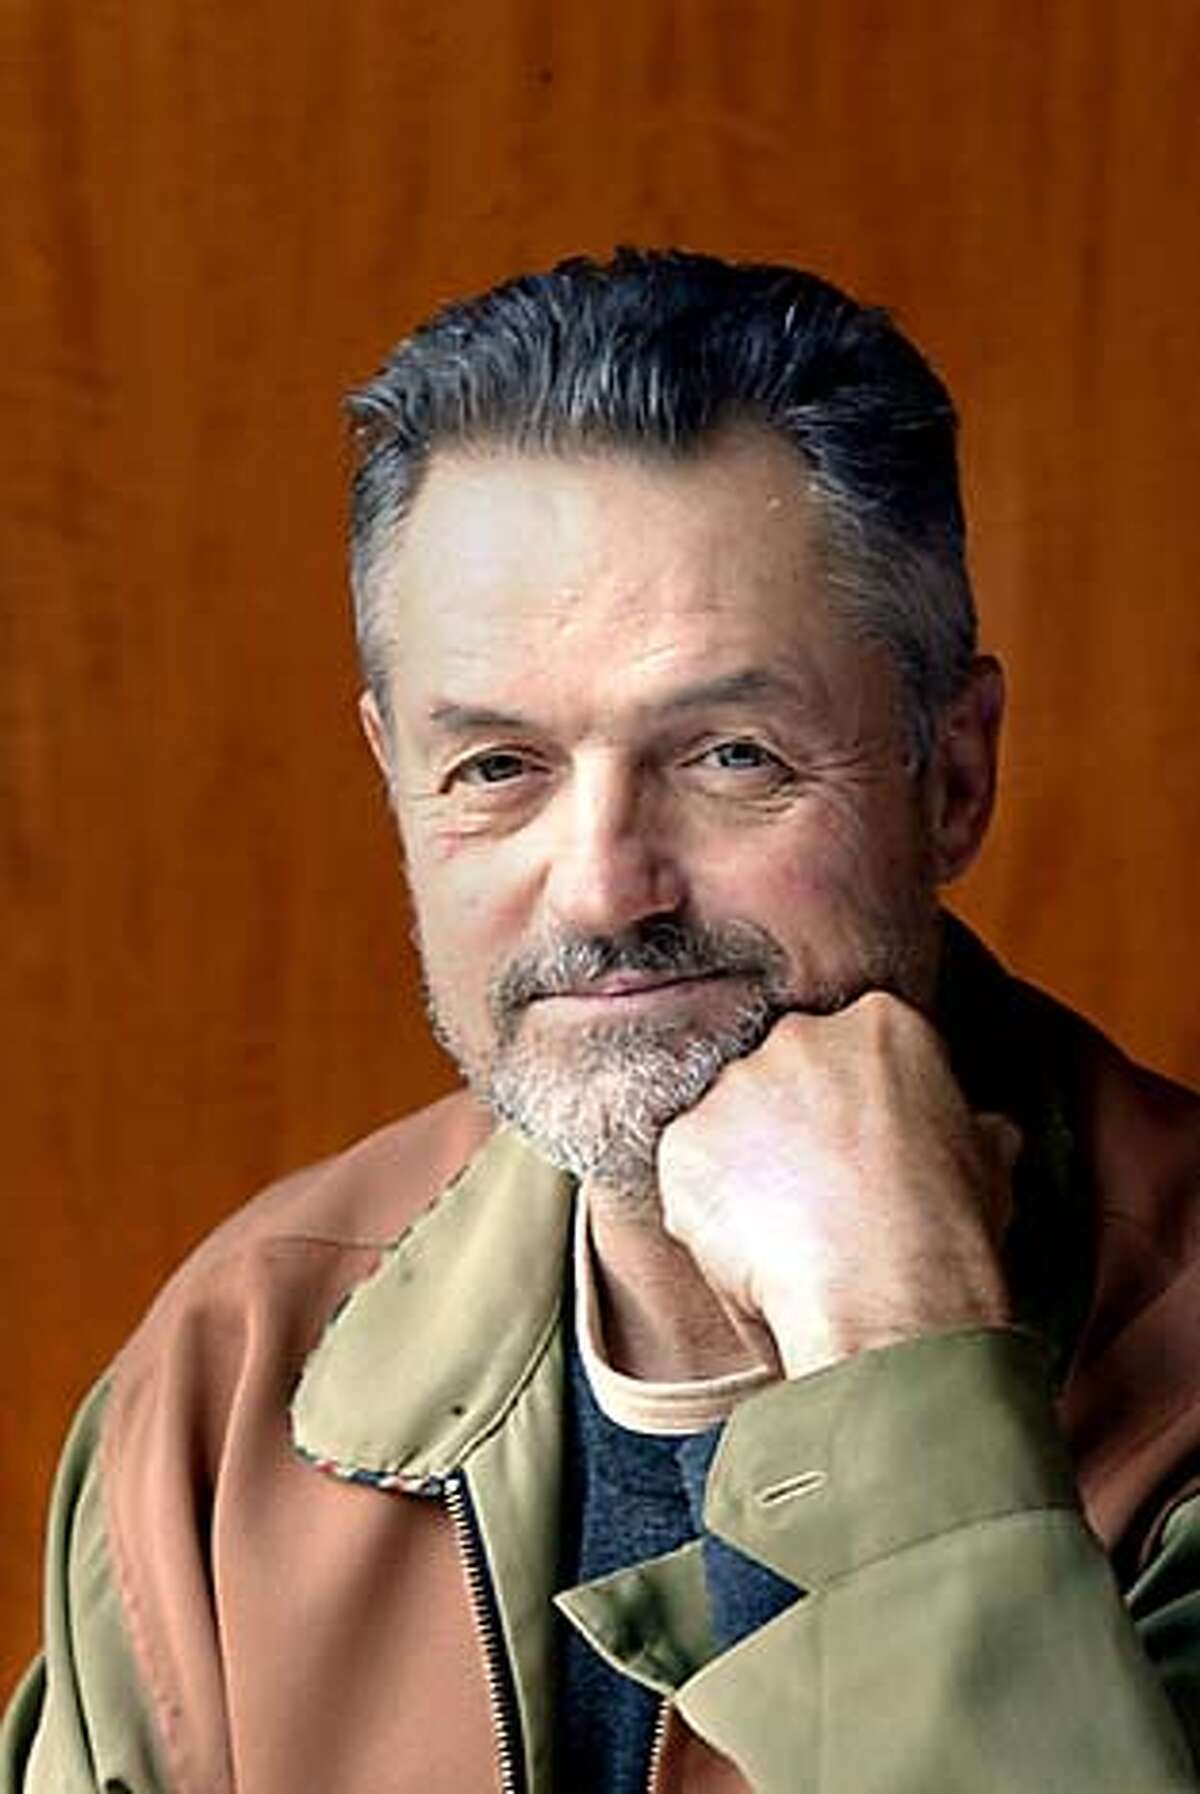 """DEMME23c-C-16OCT02-DD-LH--Director Jonathan Demme doing a new movie called """"The Truth About Charlie"""" which is based on the book """"Charade"""". (PHOTOGRAPHED BY LIZ HAFALIA/THE SAN FRANCISCO CHRONICLE)"""